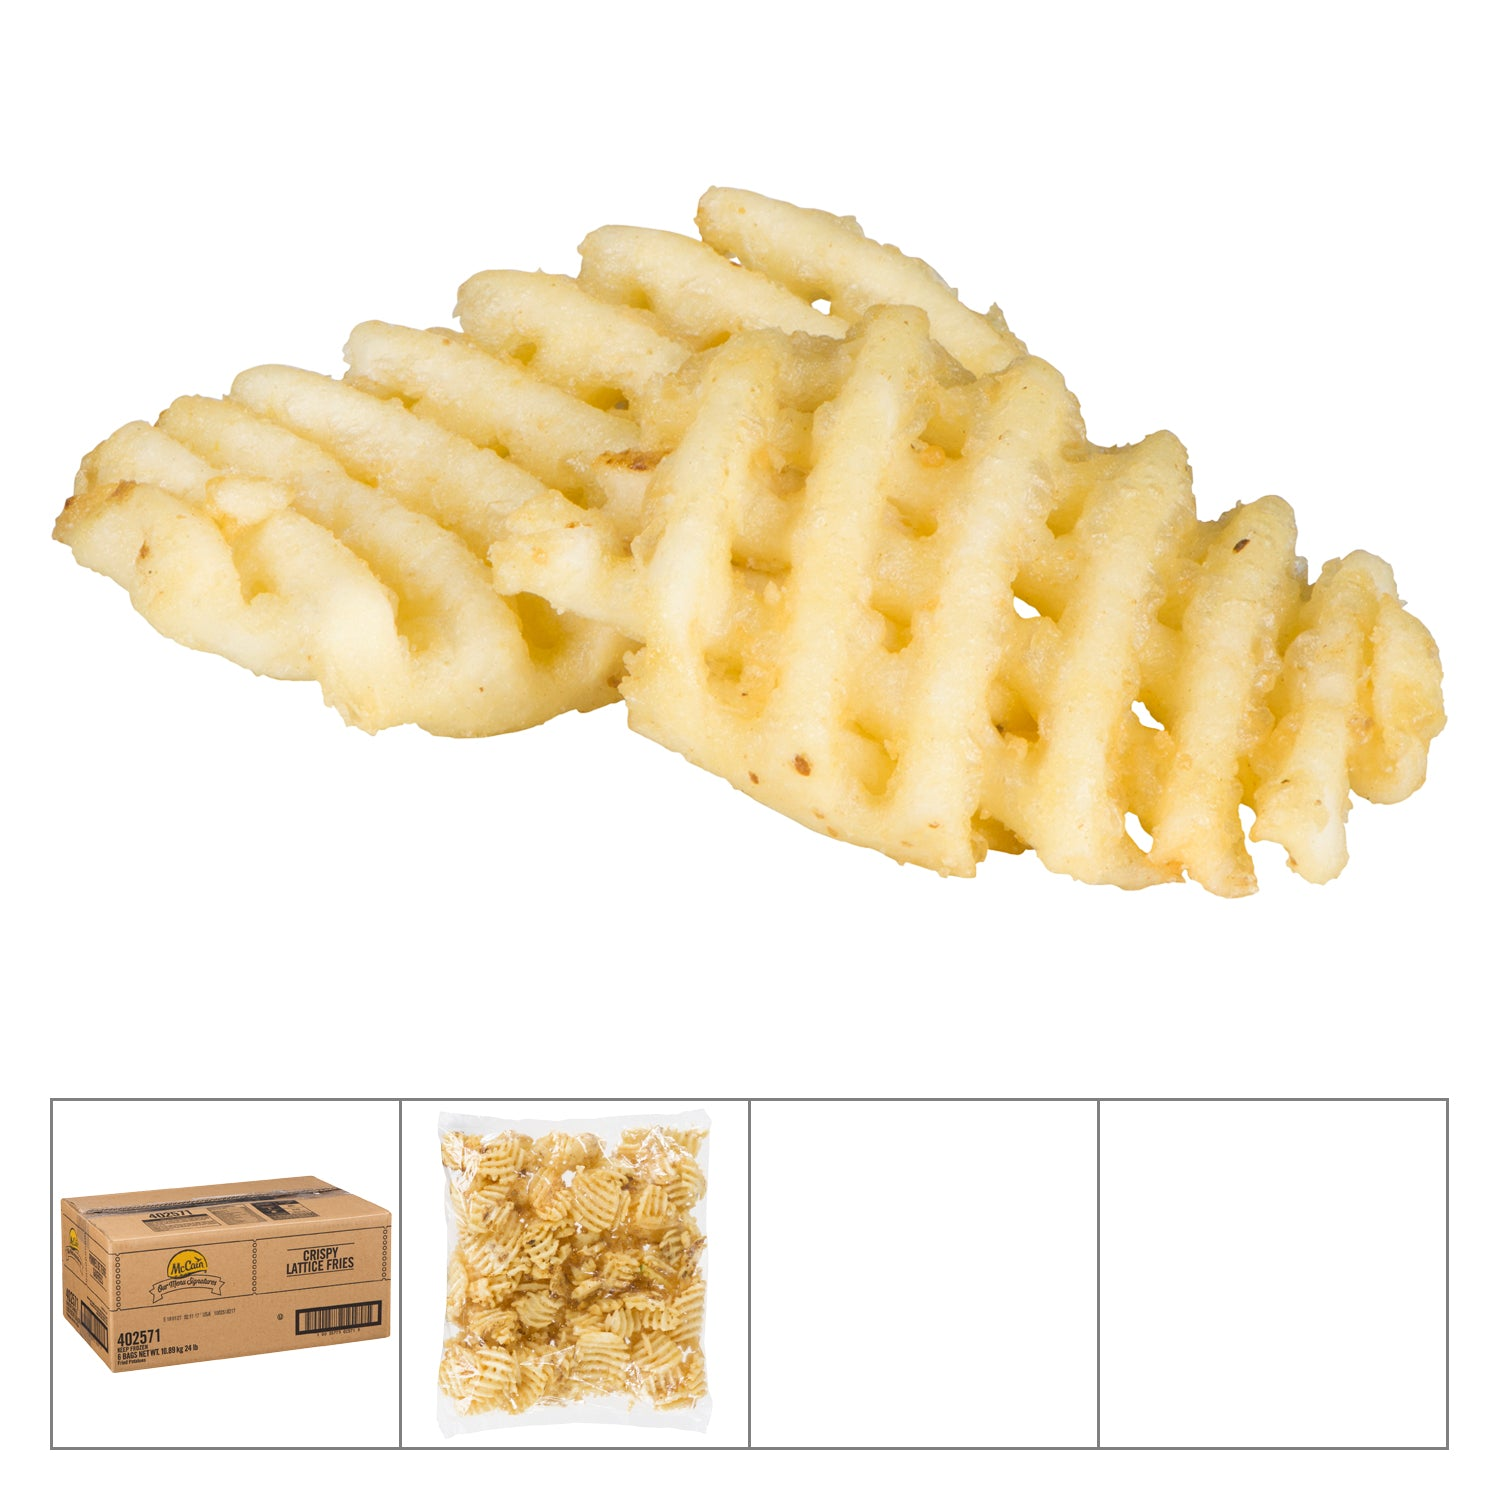 McCain Frozen Crispy Lattice Cut Fries 4 lb - 6 Pack [$2.25/lb]